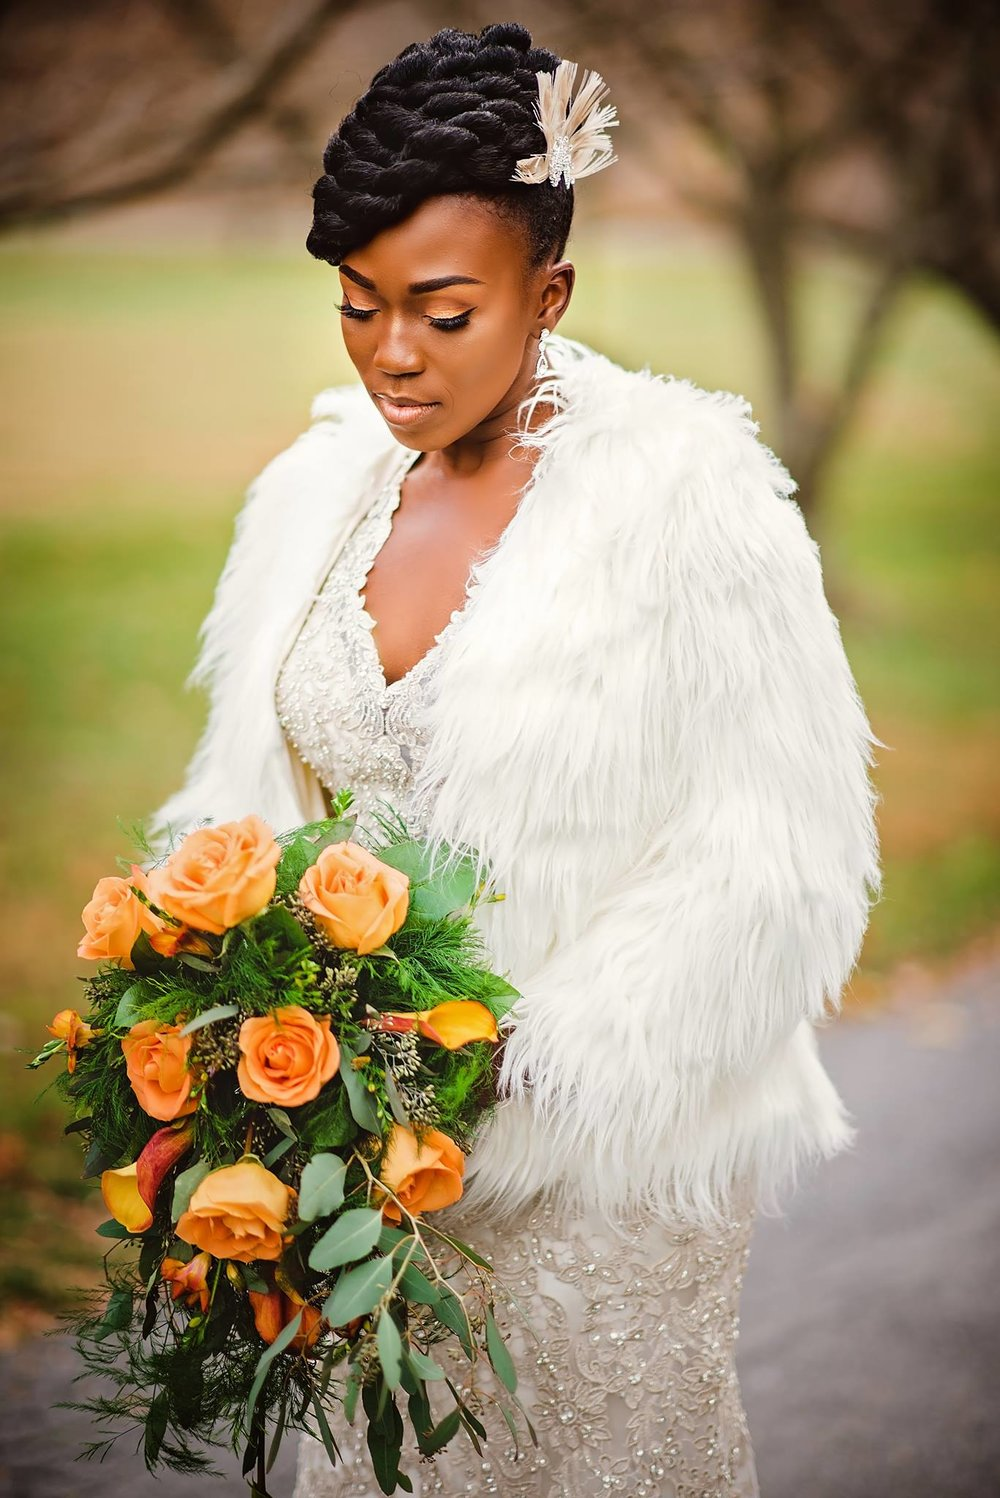 Kizita + Curtis on November 19, 2016  ♥ 1001 Angles Photography at Provision 14 (NW DC)